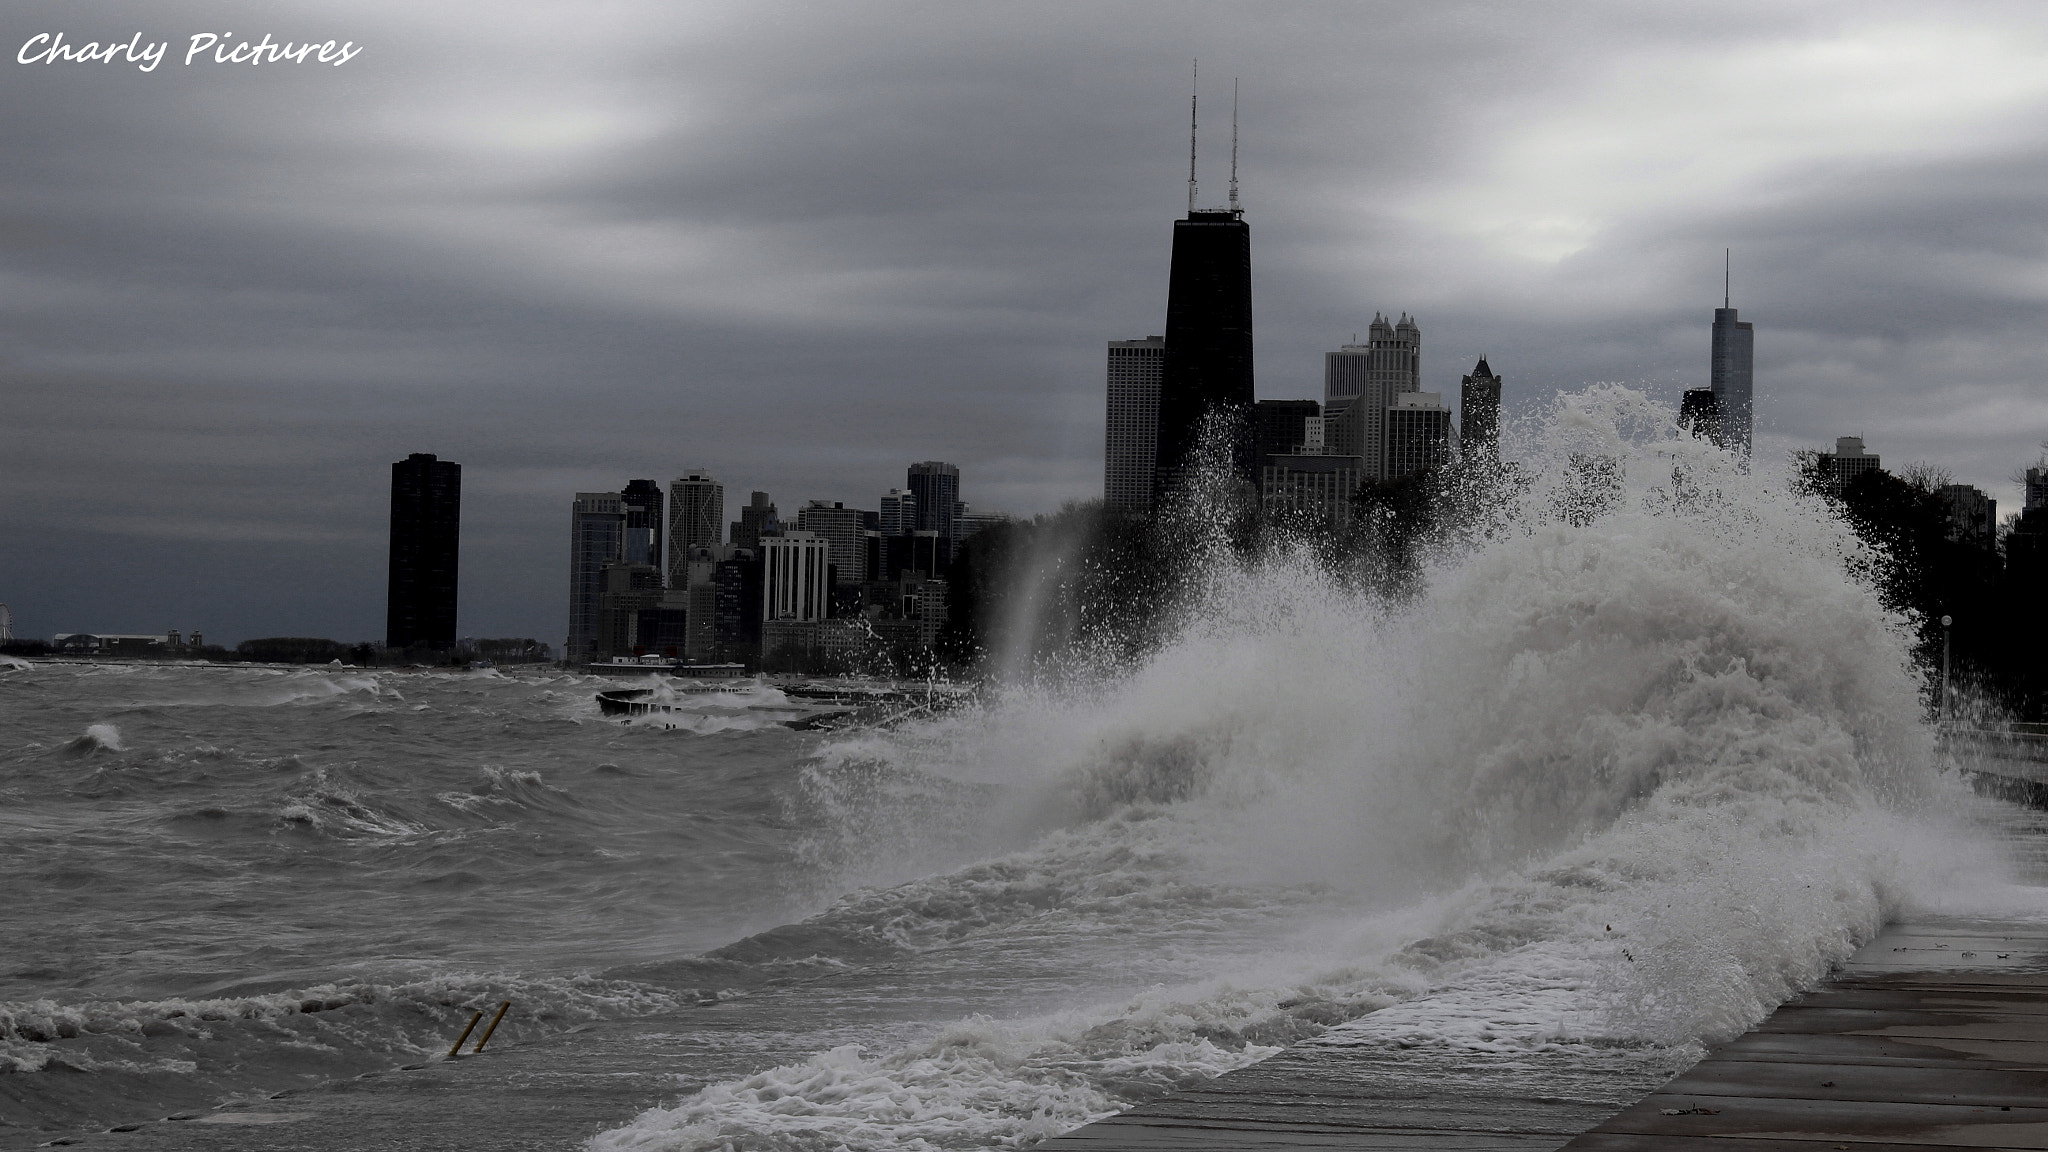 Photograph Windy City Today  by Charly Pictures on 500px